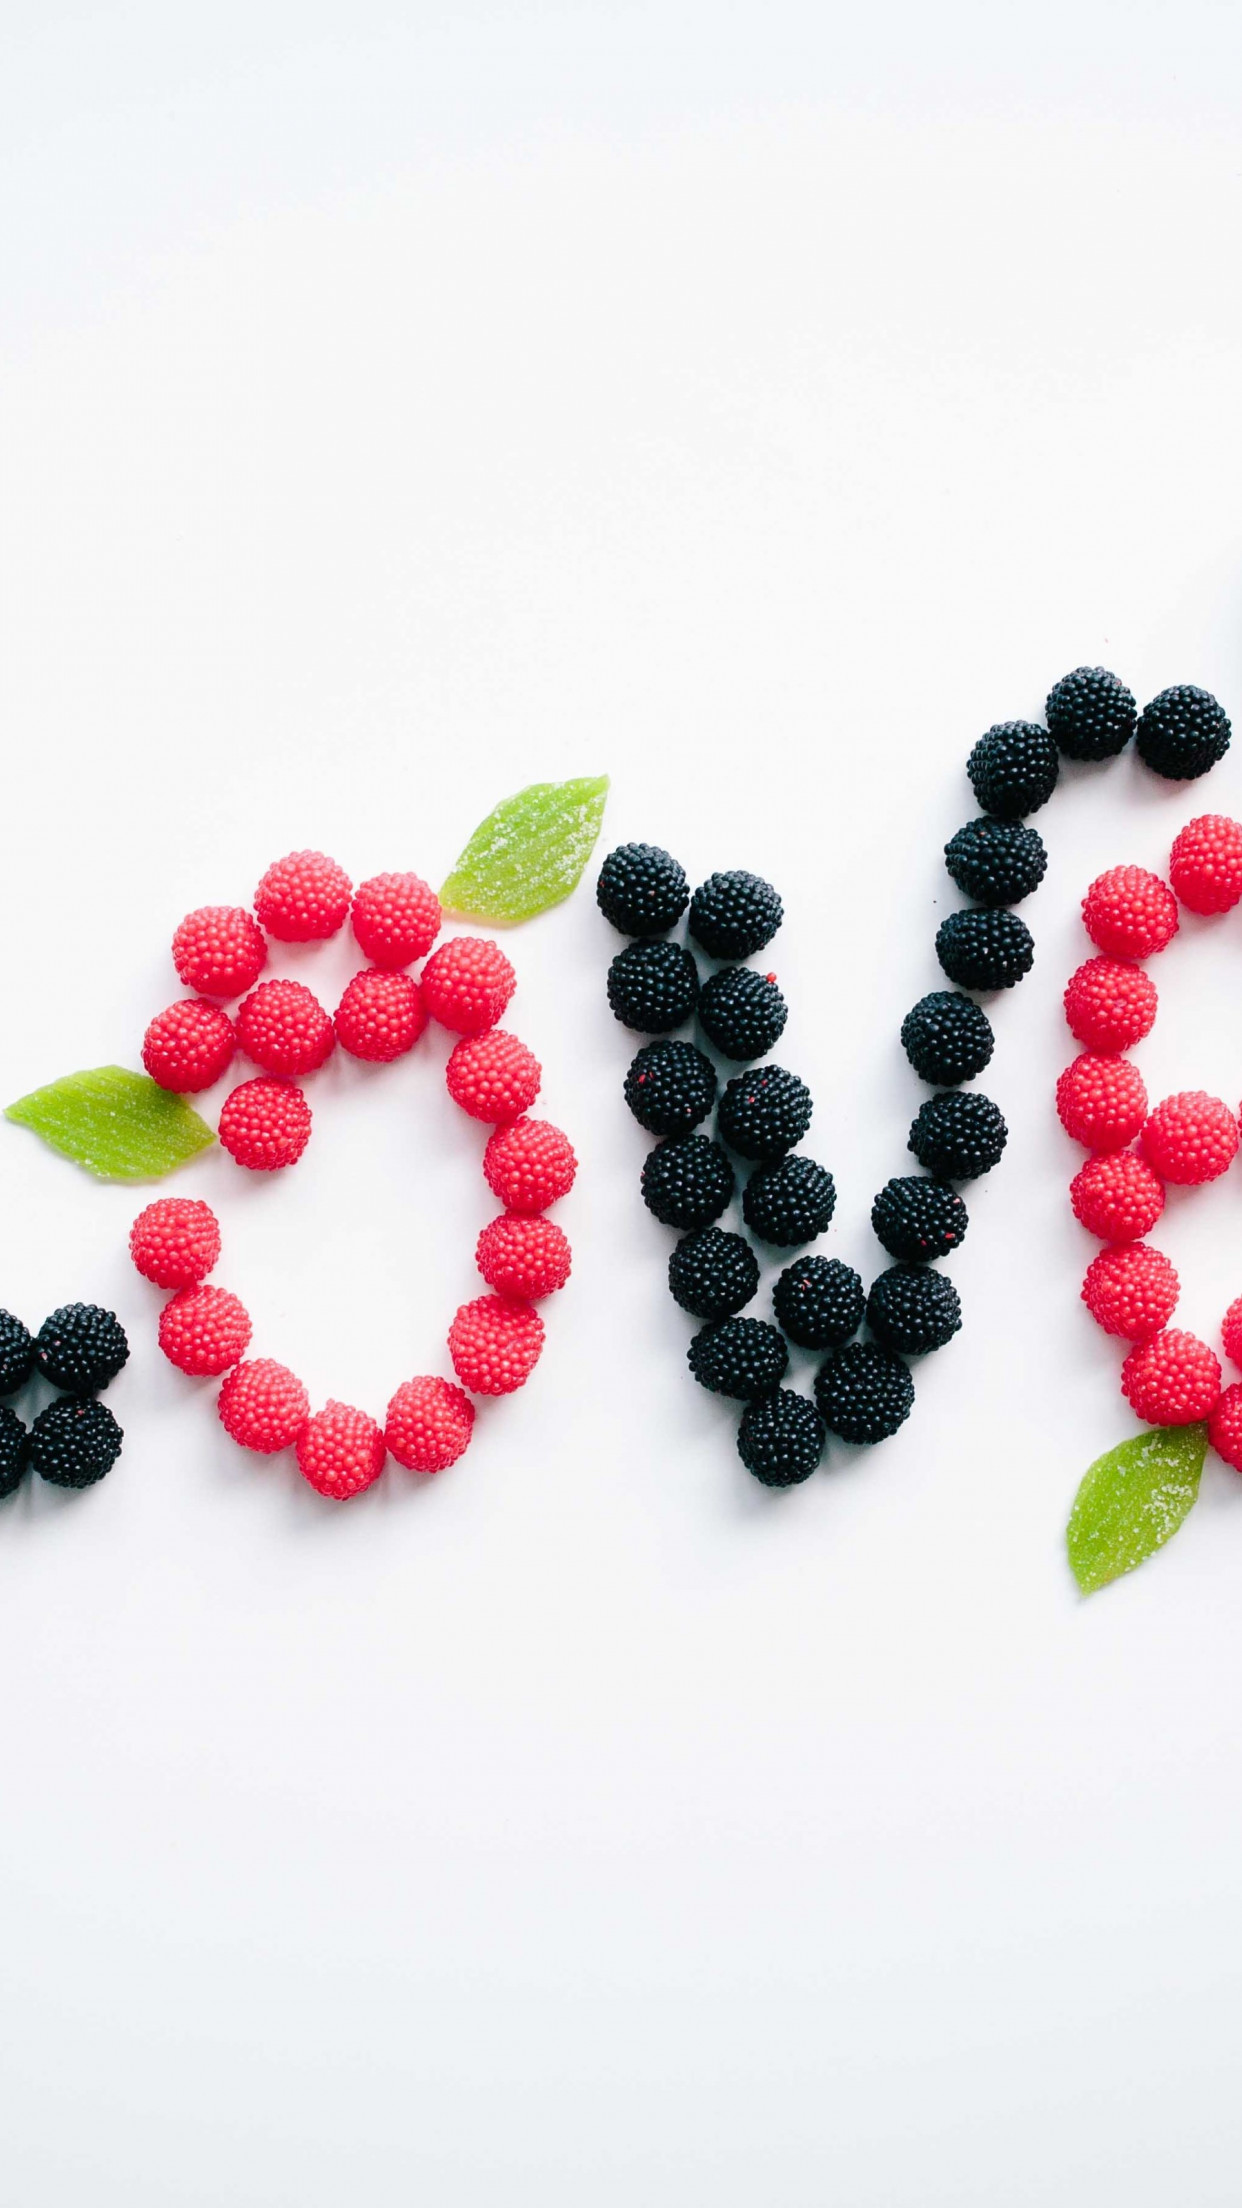 Love message with fruits | 1242x2208 wallpaper